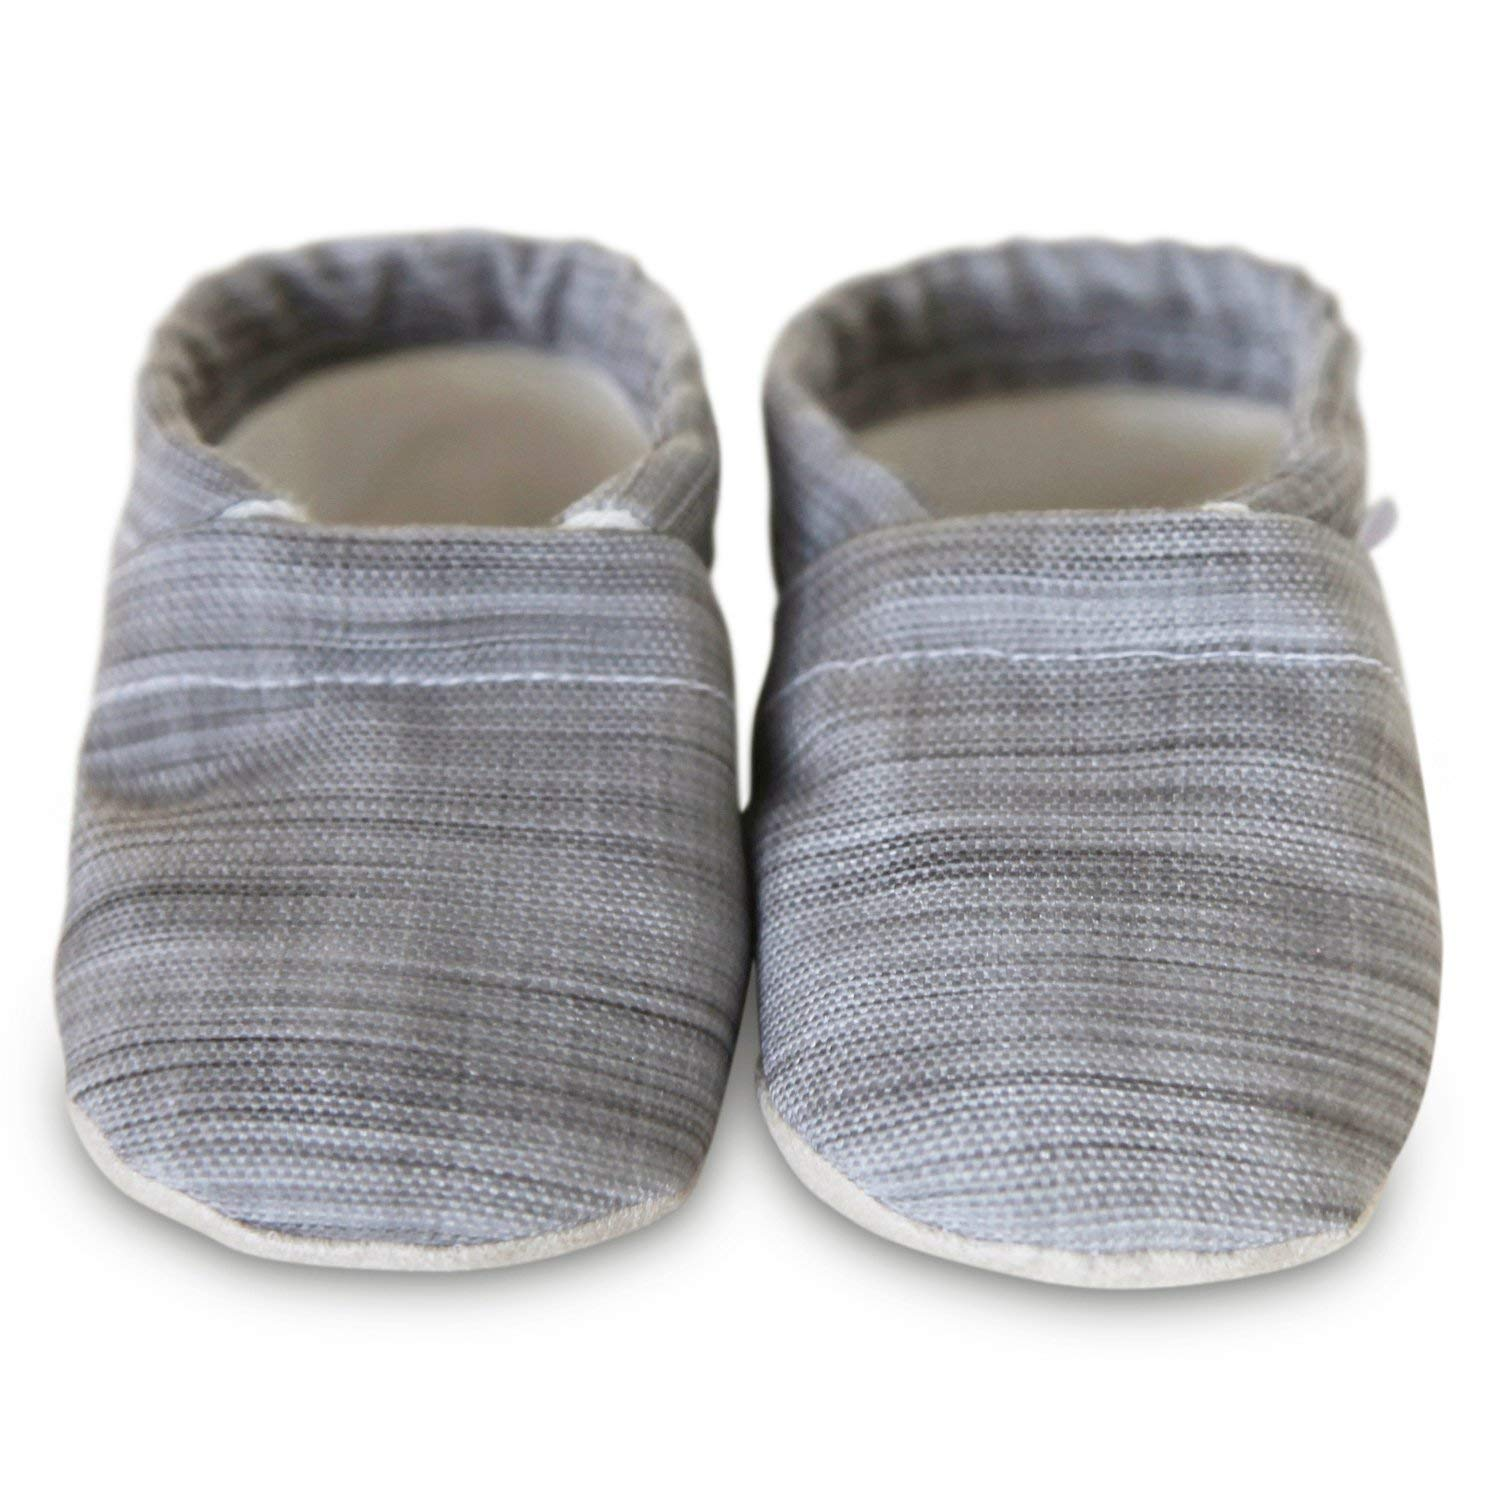 Clamfeet Organic soft soled baby shoes